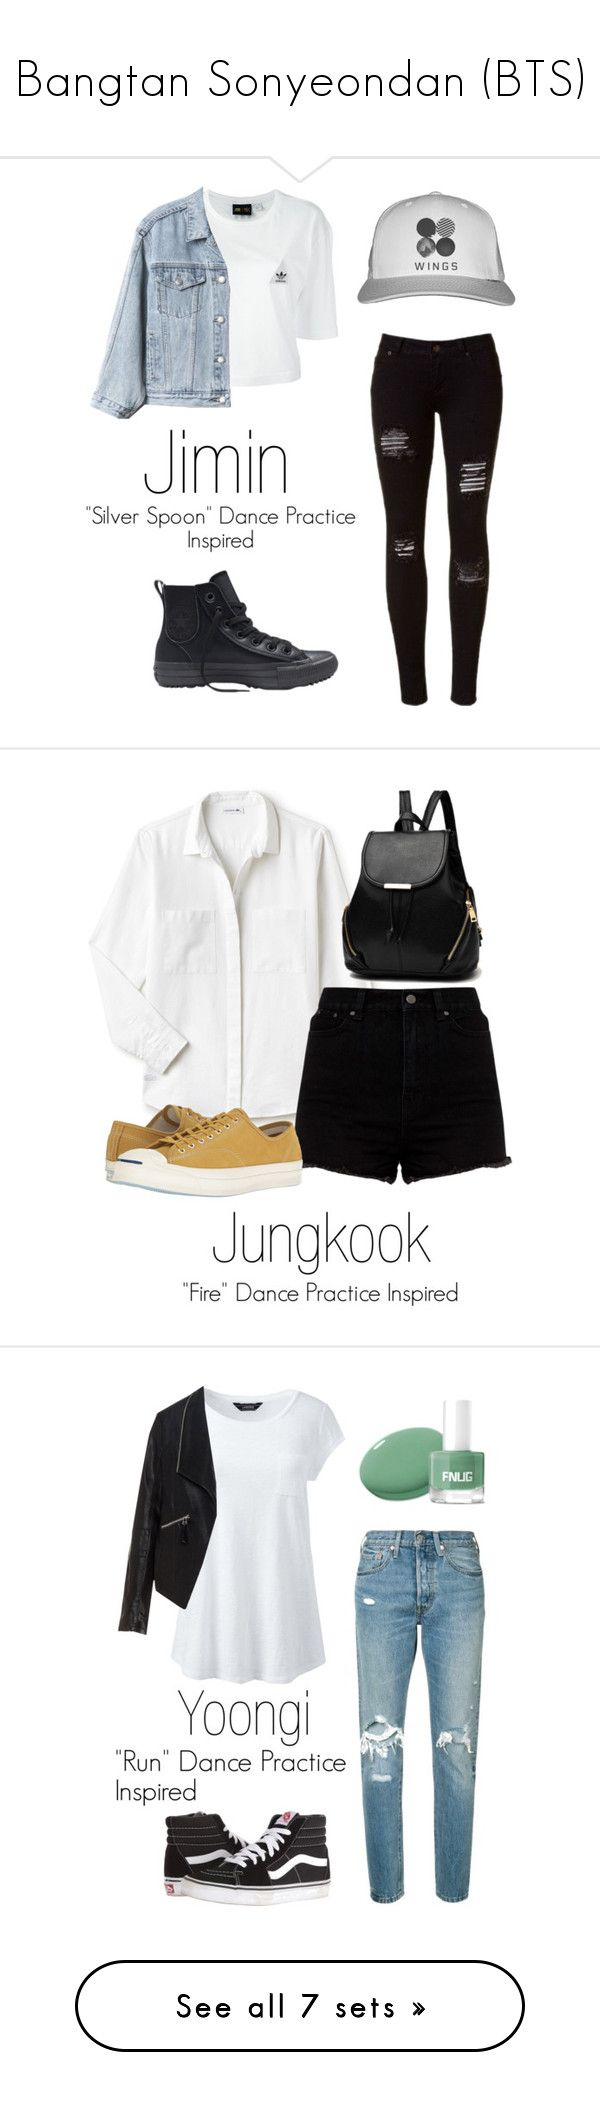 """Bangtan Sonyeondan (BTS)"" by mochimchimus ❤ liked on Polyvore featuring bts, adidas, Gap, Converse, Lacoste, Lands' End, Levi's, Zizzi, Vans and Old Navy"